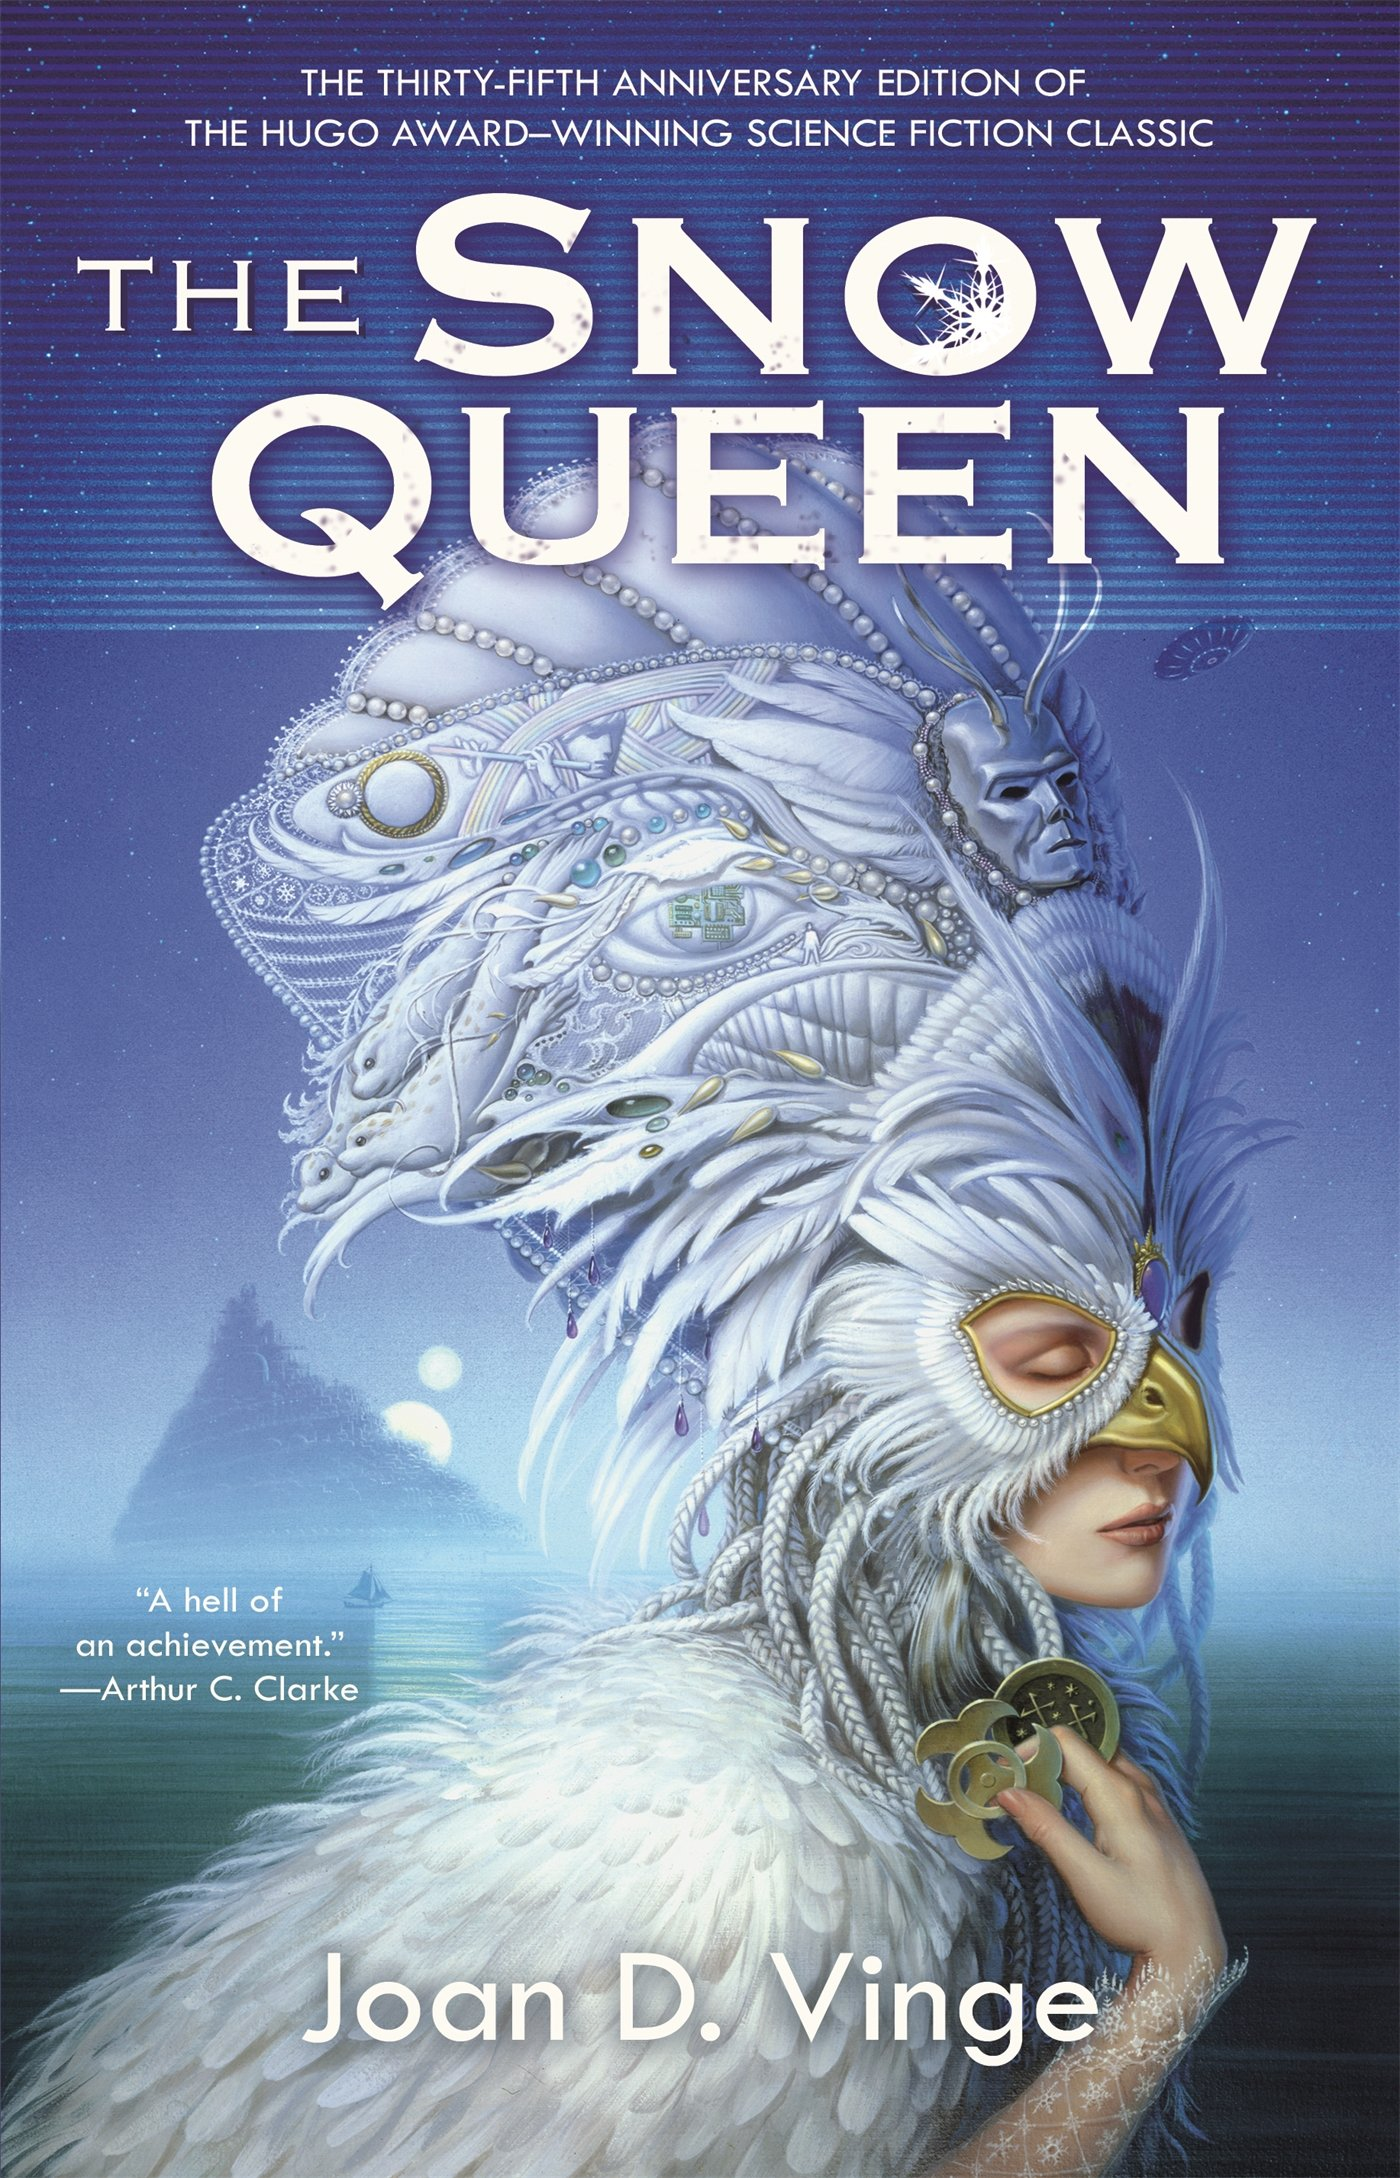 Joan D. Vinge - The Snow Queen